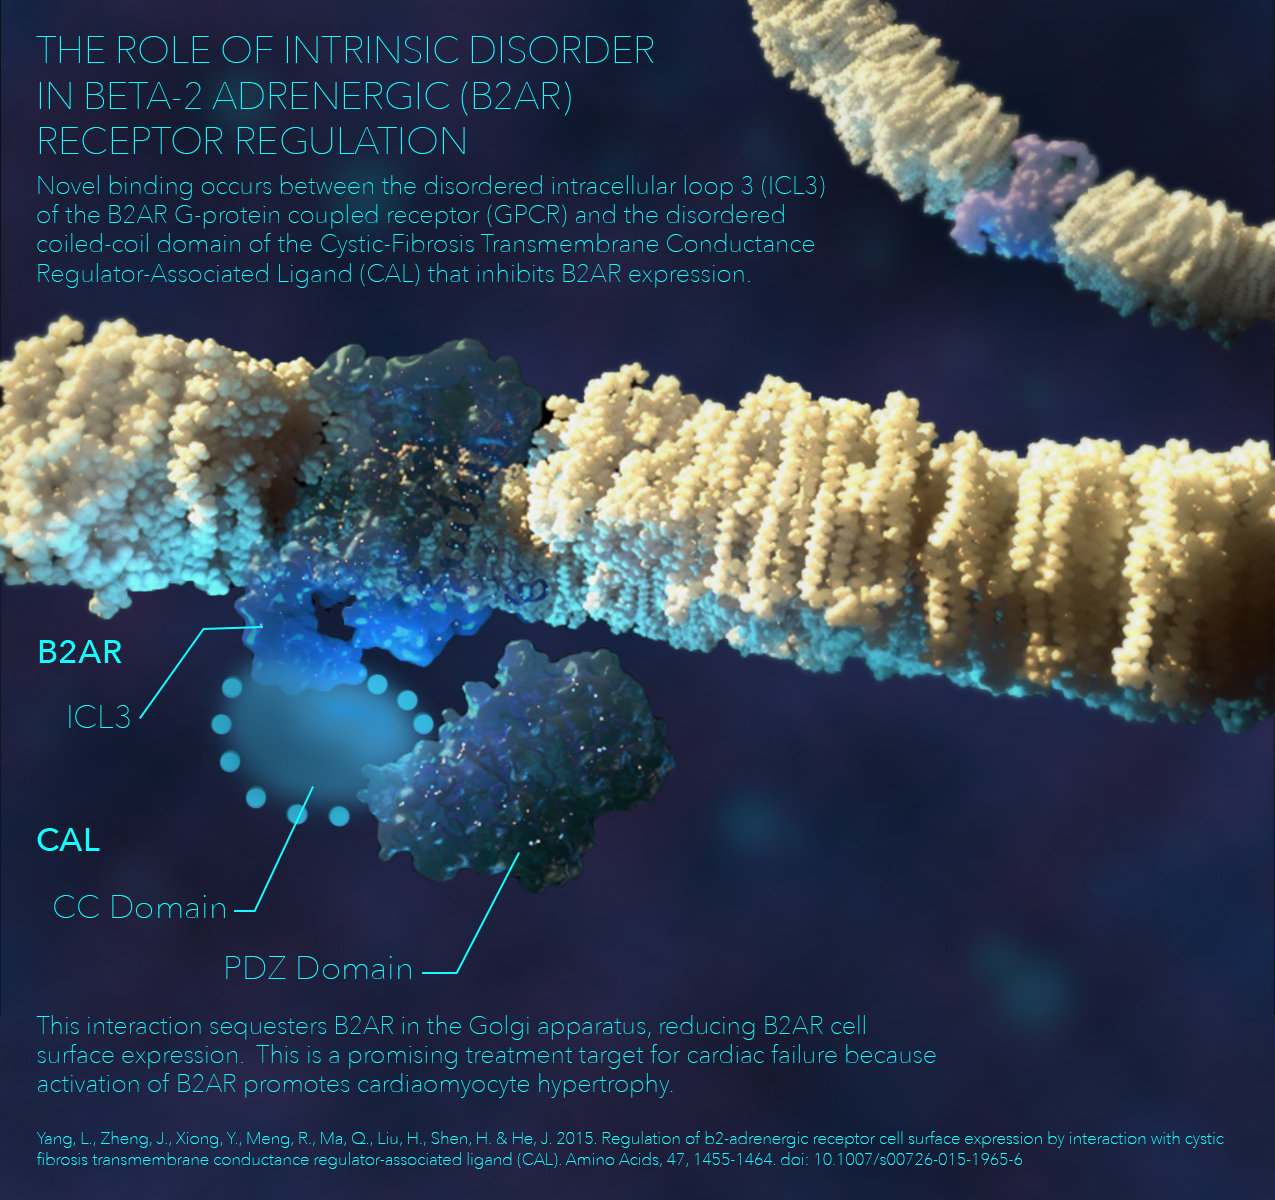 Molecular Pharmacology Poster | Visual Molecular Dynamics (VMD), 3DS Max, Adobe Photoshop